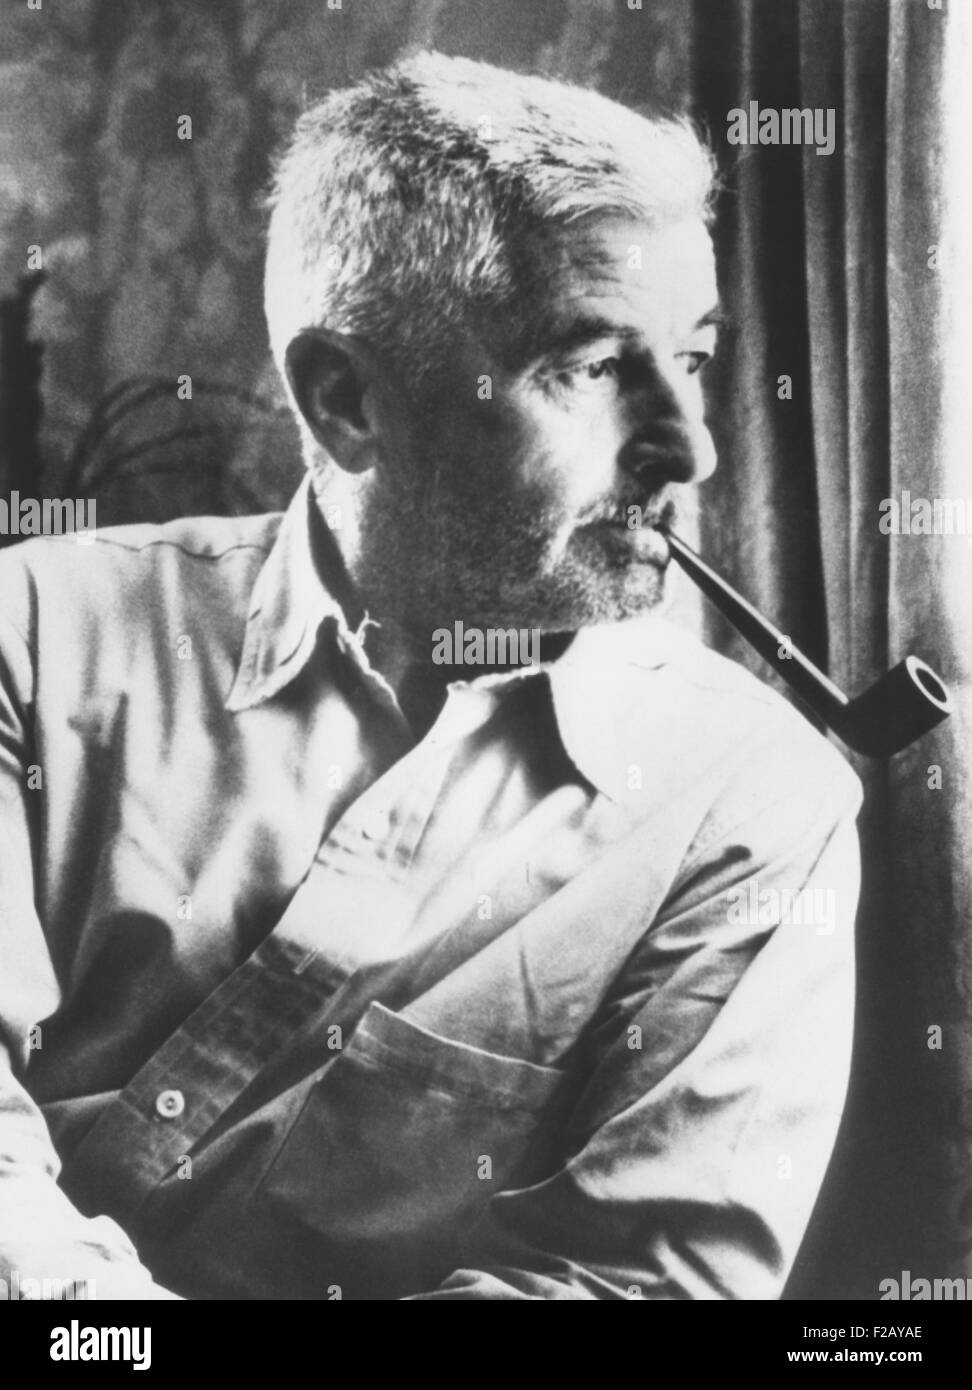 William Faulkner, won the Nobel Prize for Literature in 1949. The Nobel committee commended 'his powerful and artistically Stock Photo